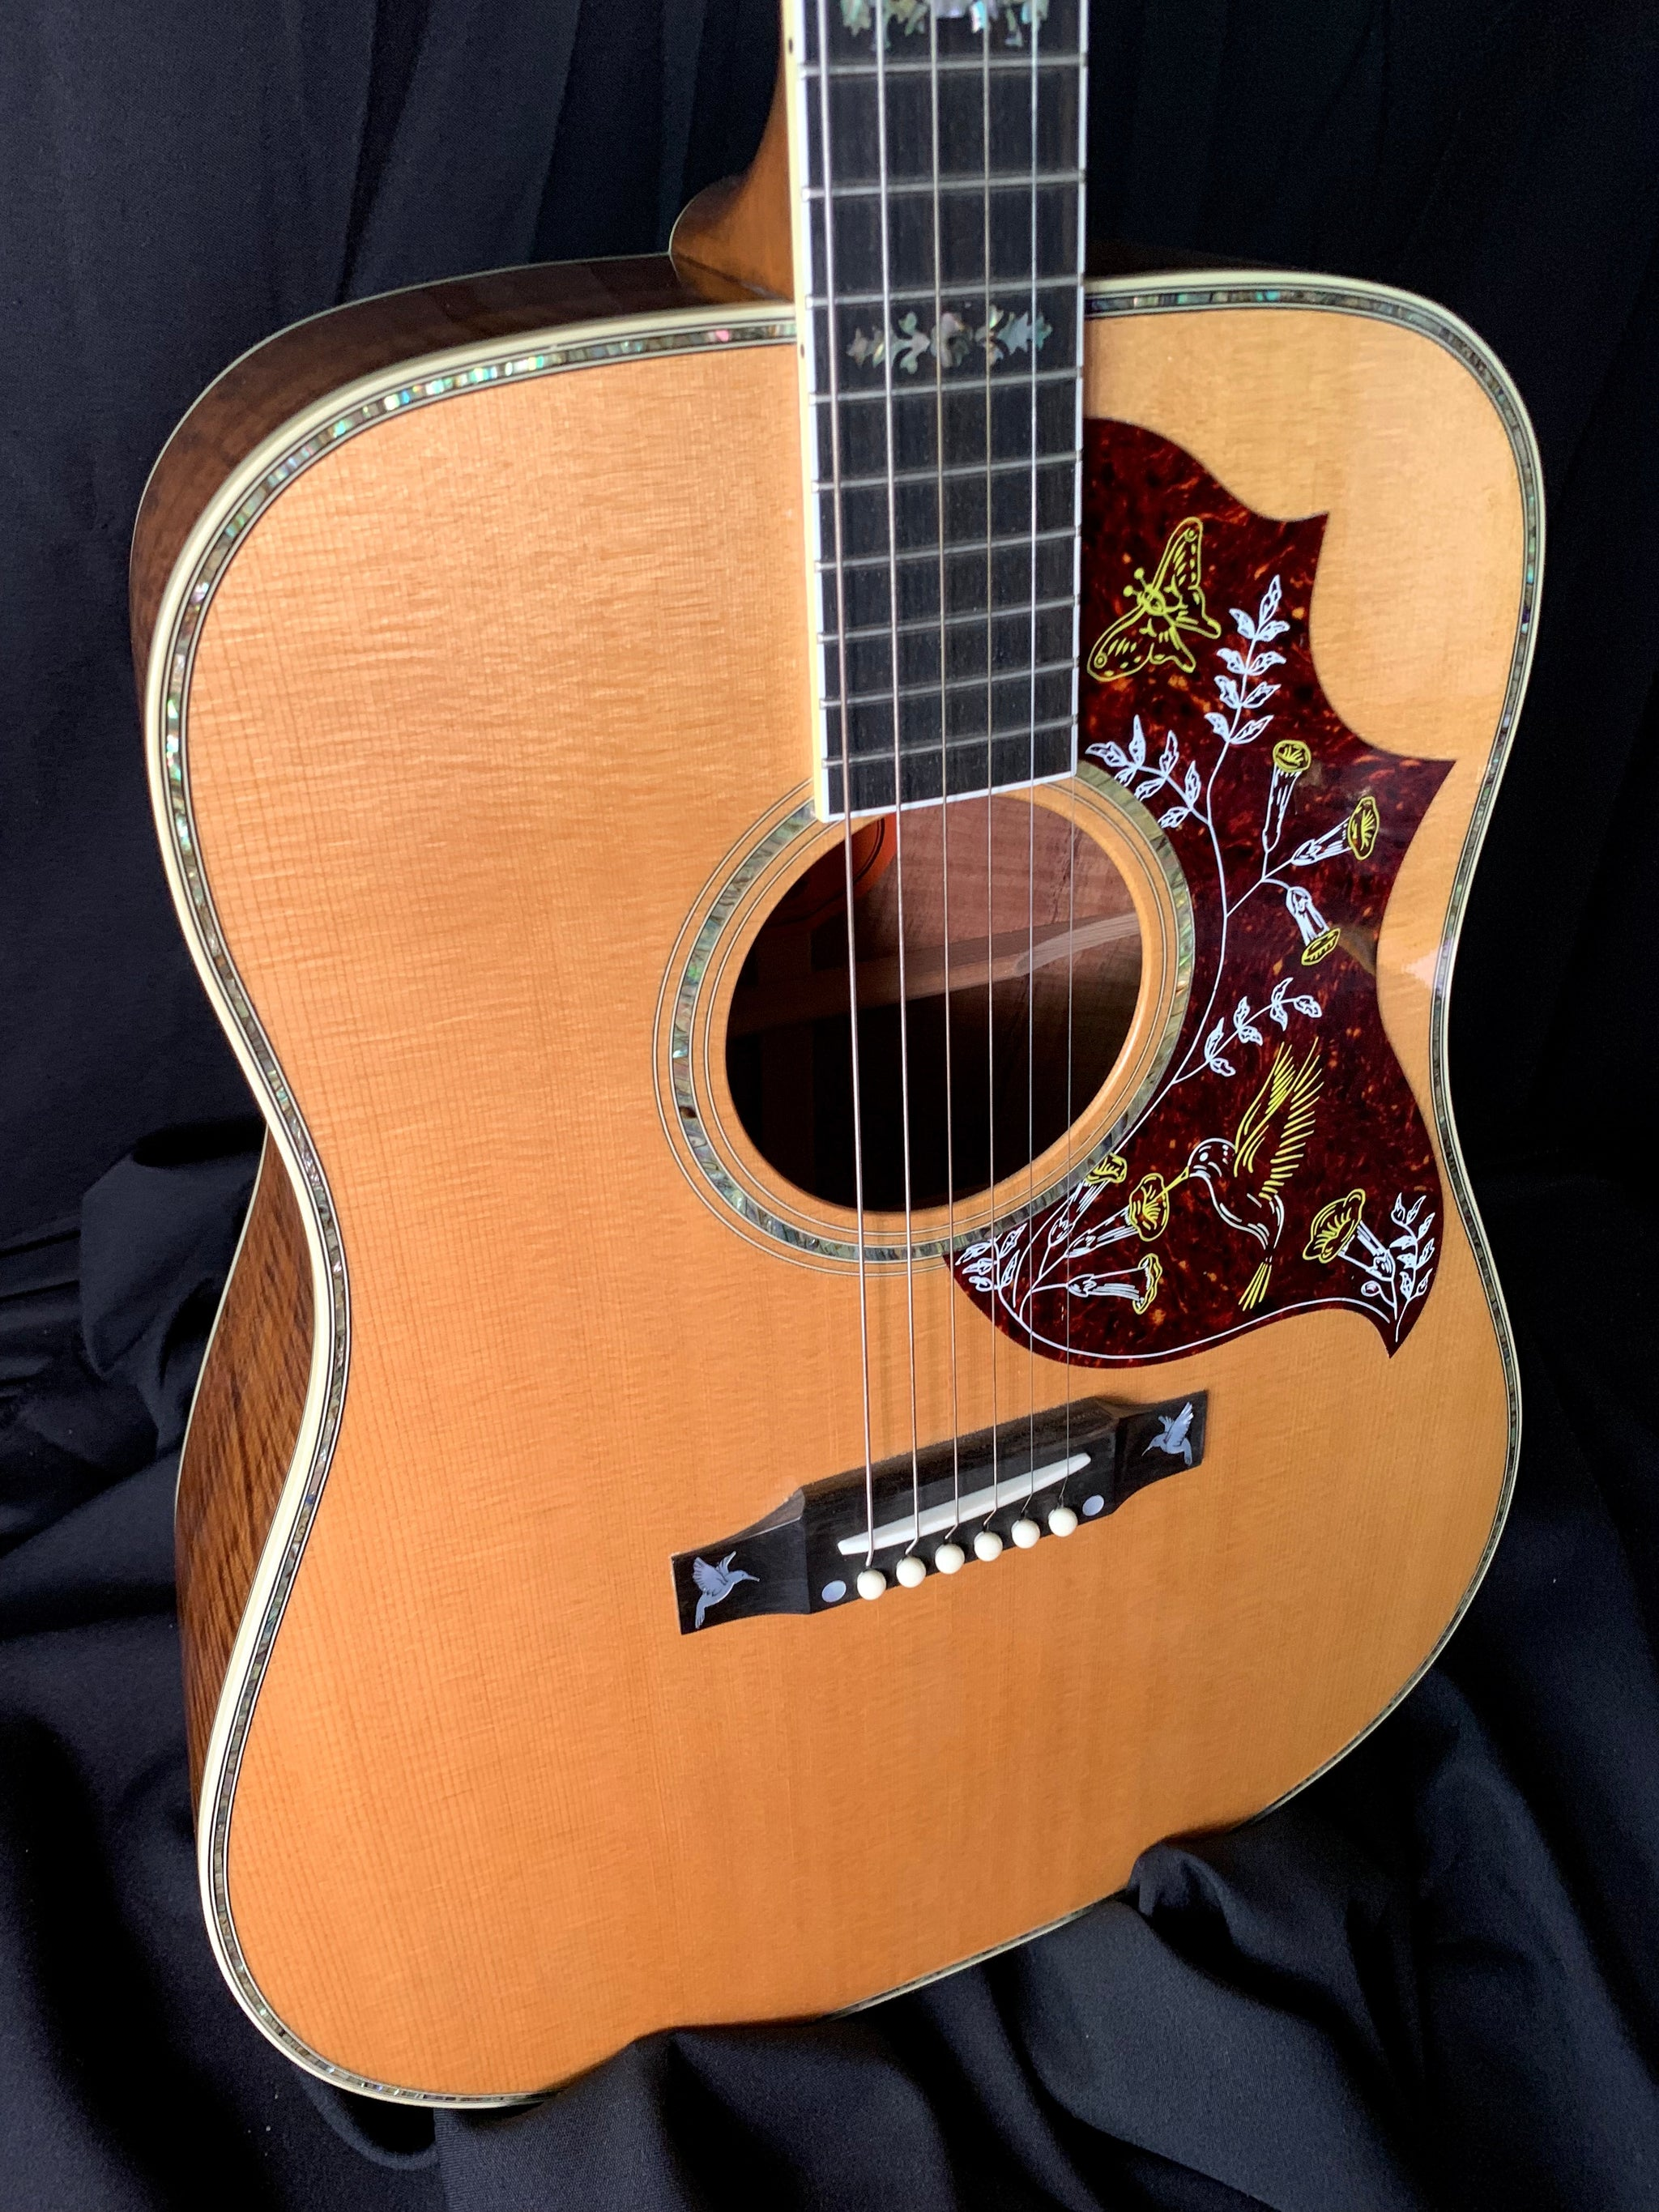 "**** SOLD**** 2001 Gibson Hummingbird ""Birds In Flight"" KOA"